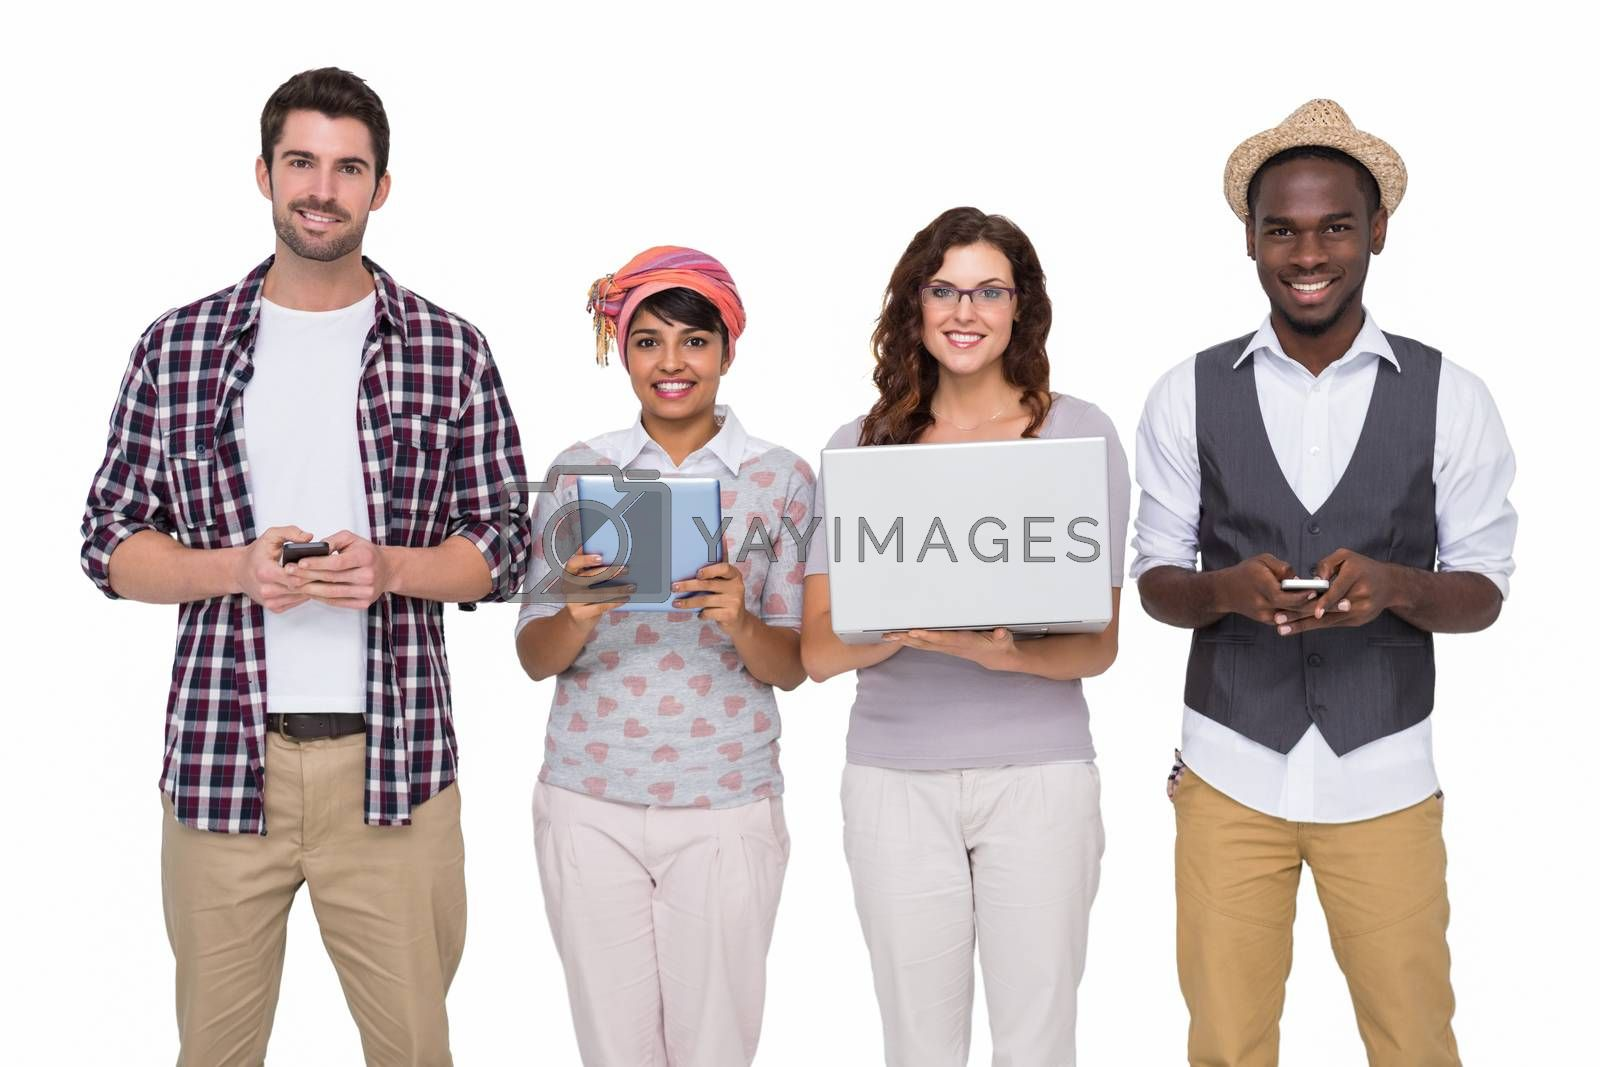 Smiling coworkers with technology posing on white background